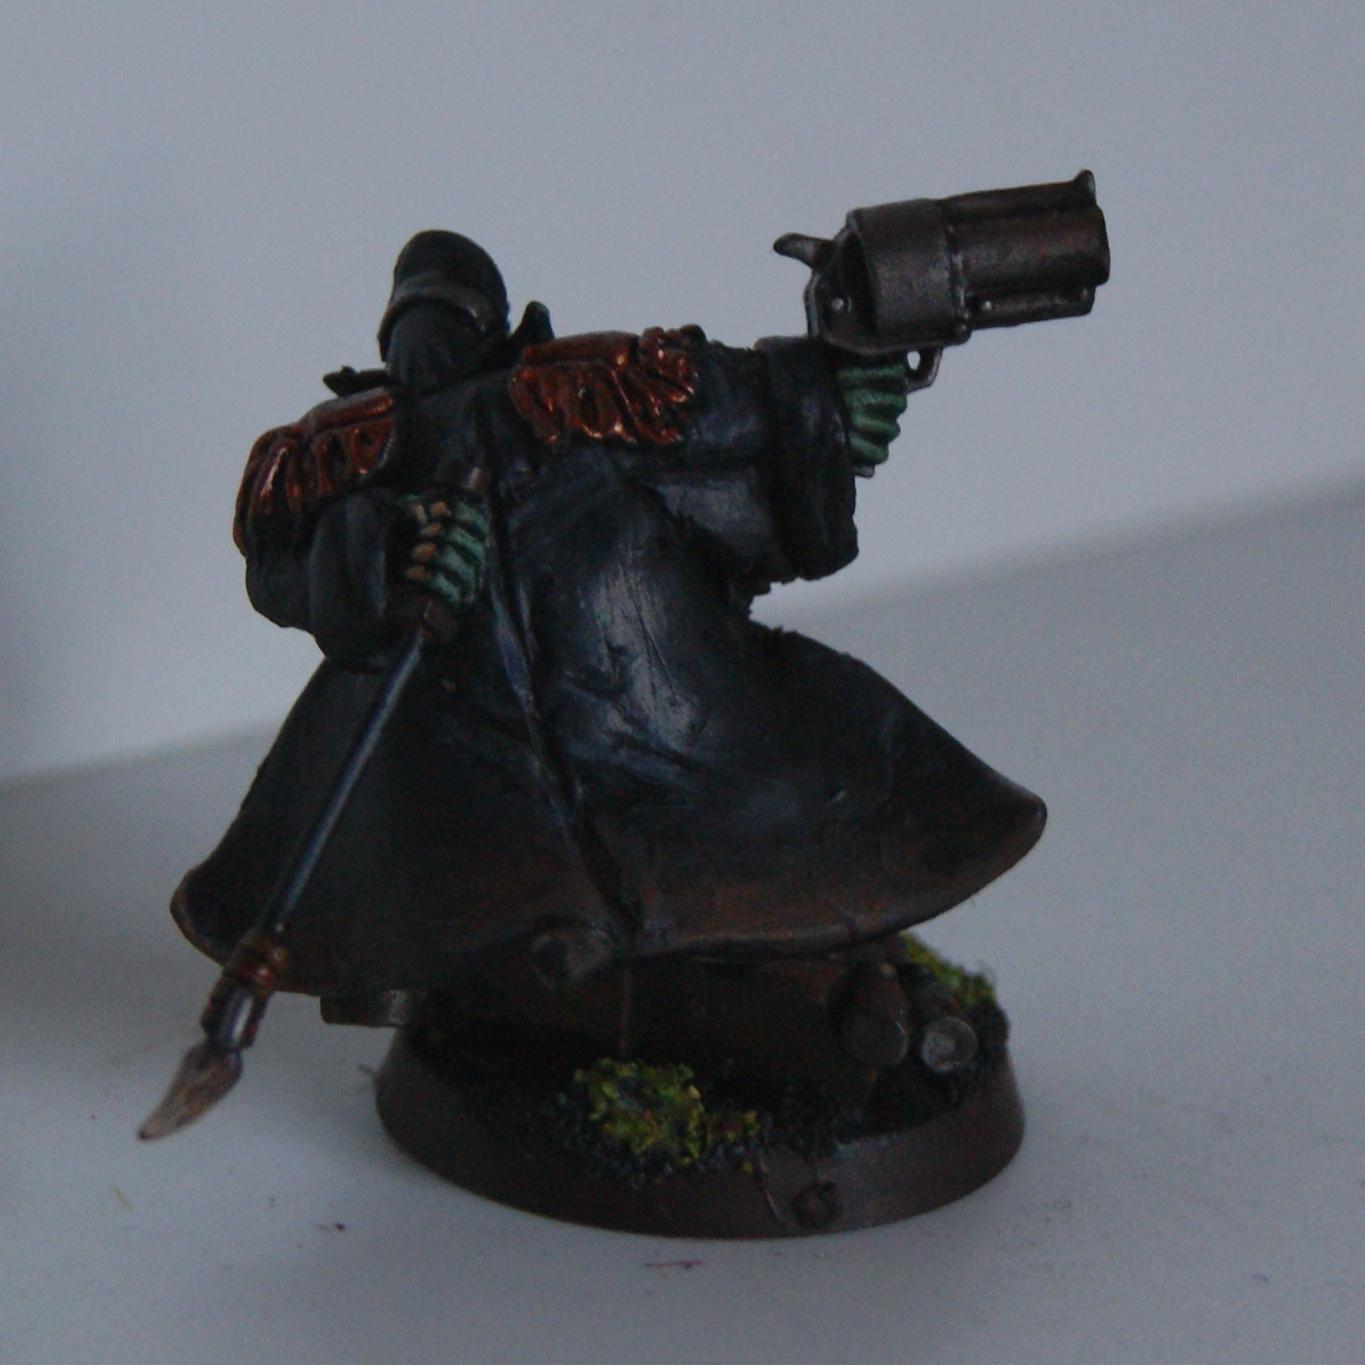 Conversion, Grot Rebellion, Grot Rebels, Grots, Kommissar, Warhammer 40,000